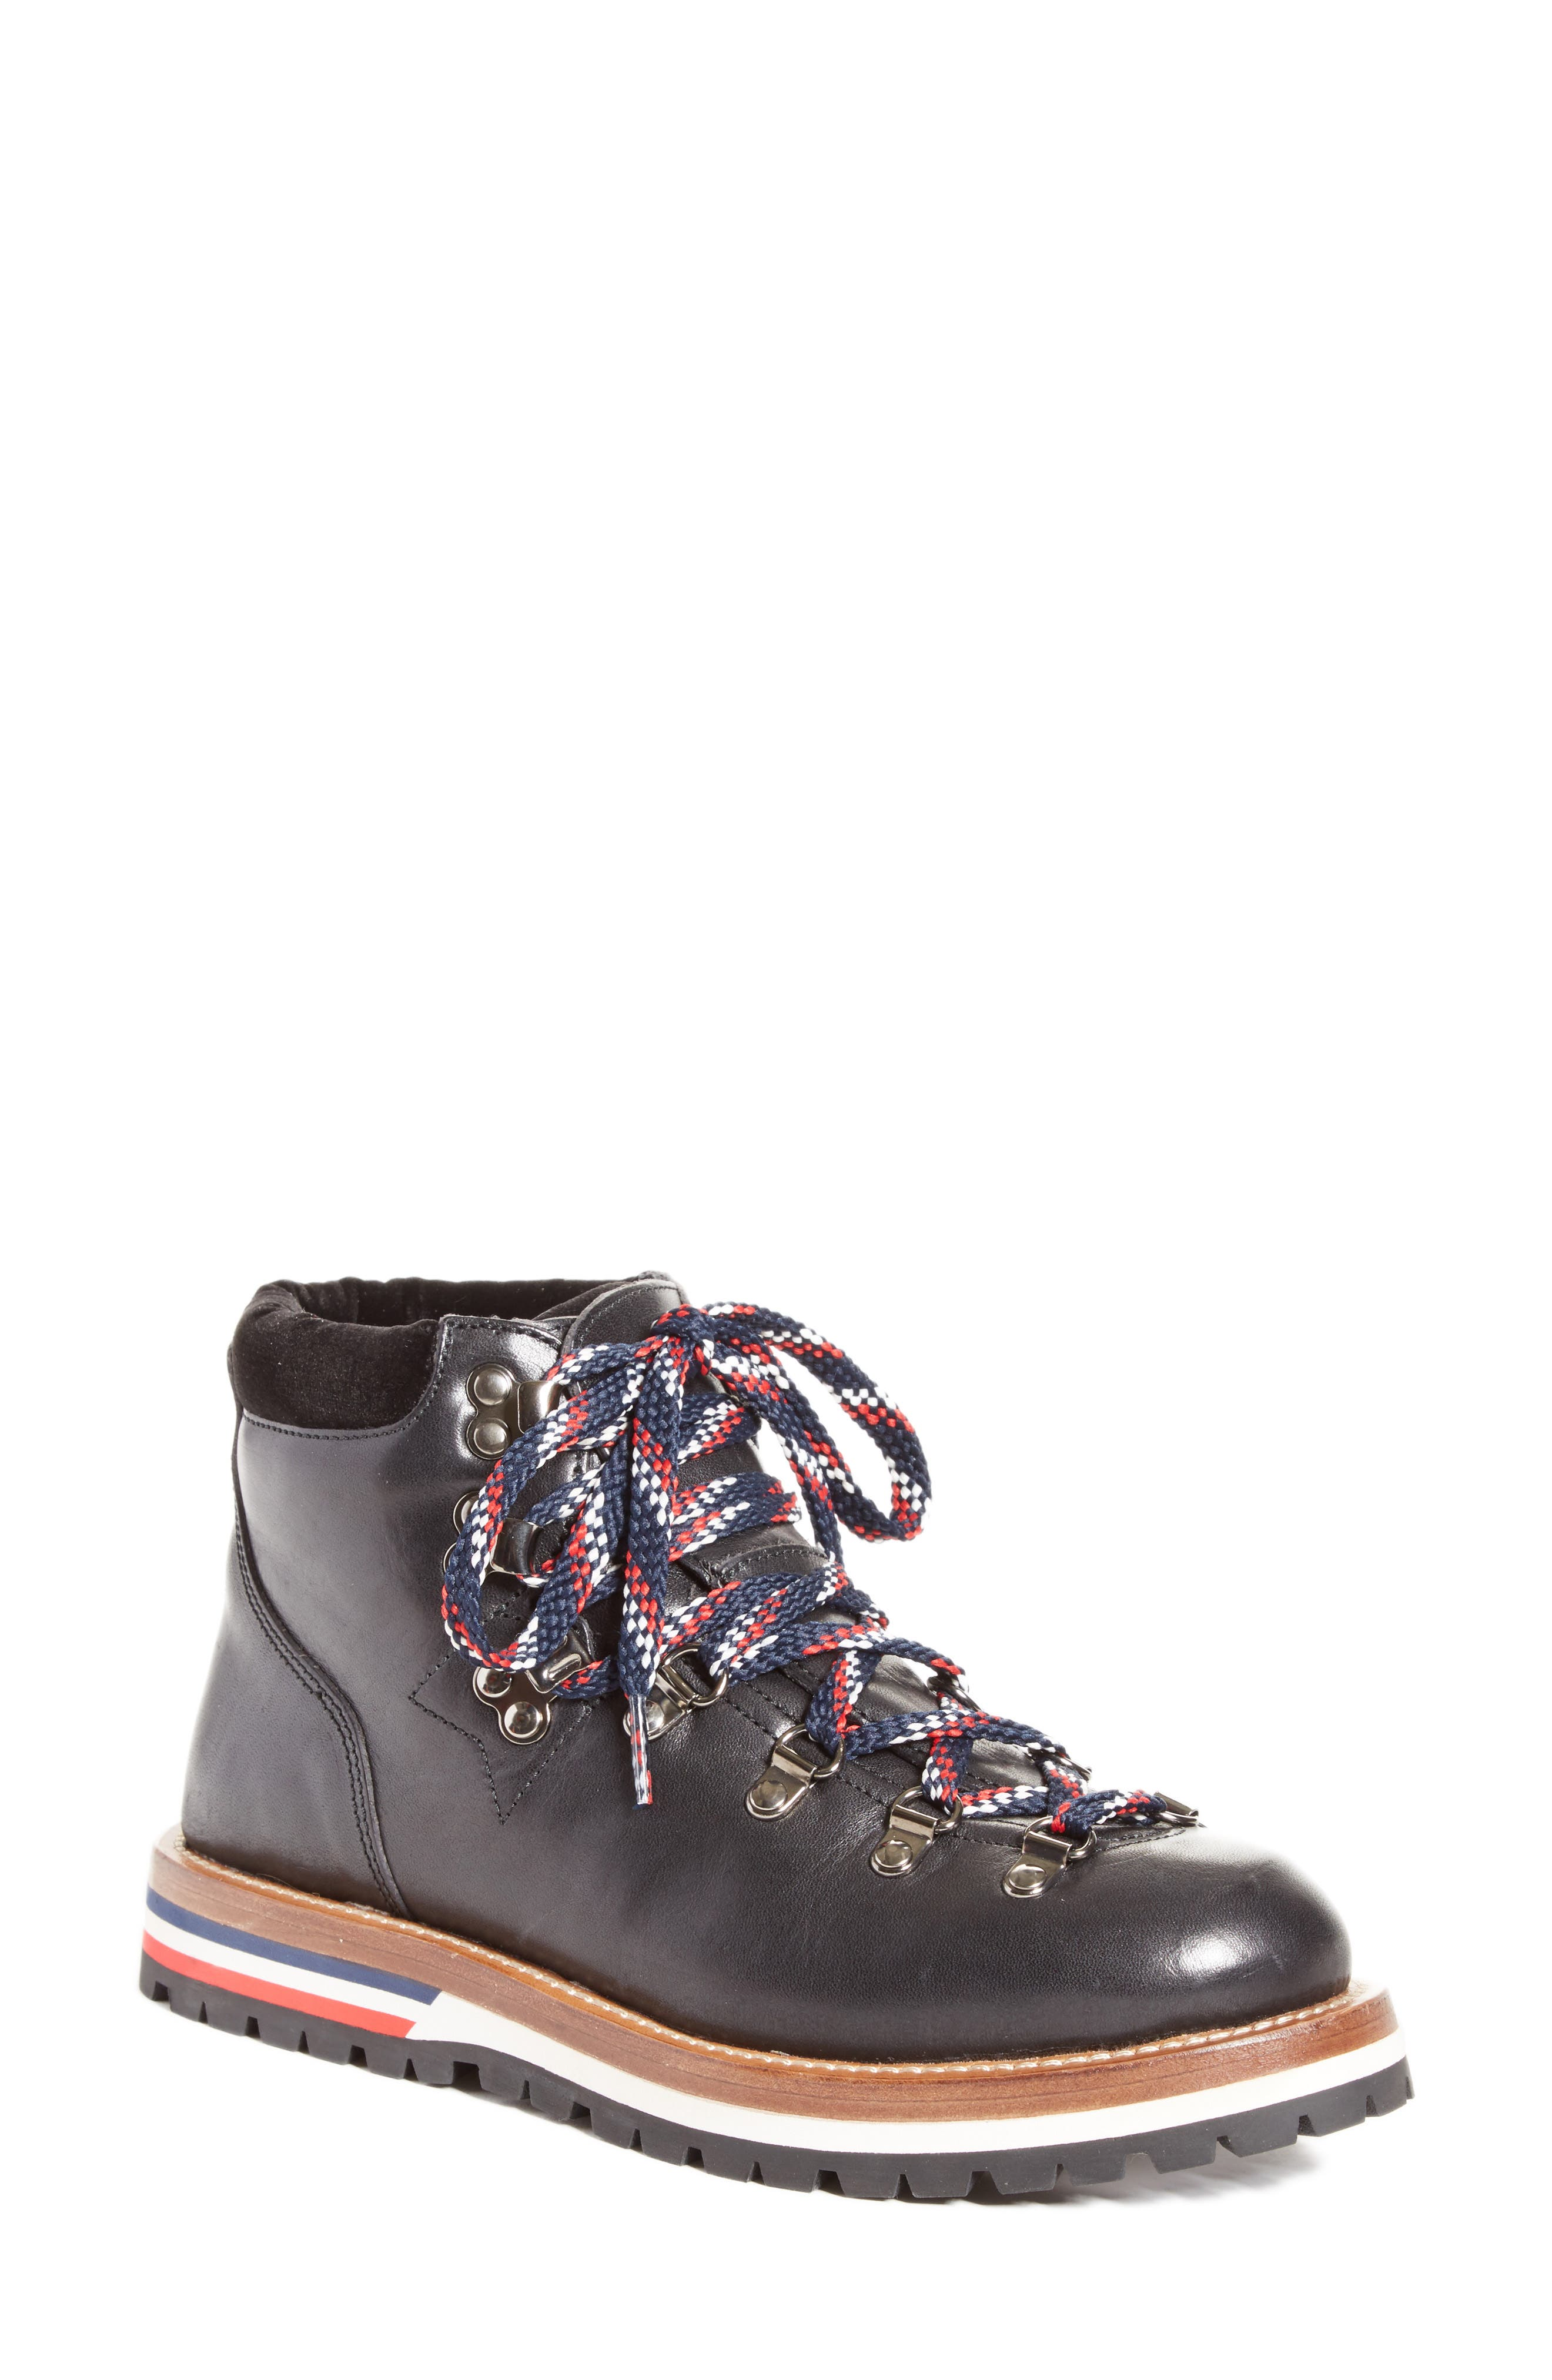 Main Image - Moncler Blanche Lace-up Boot (Women)